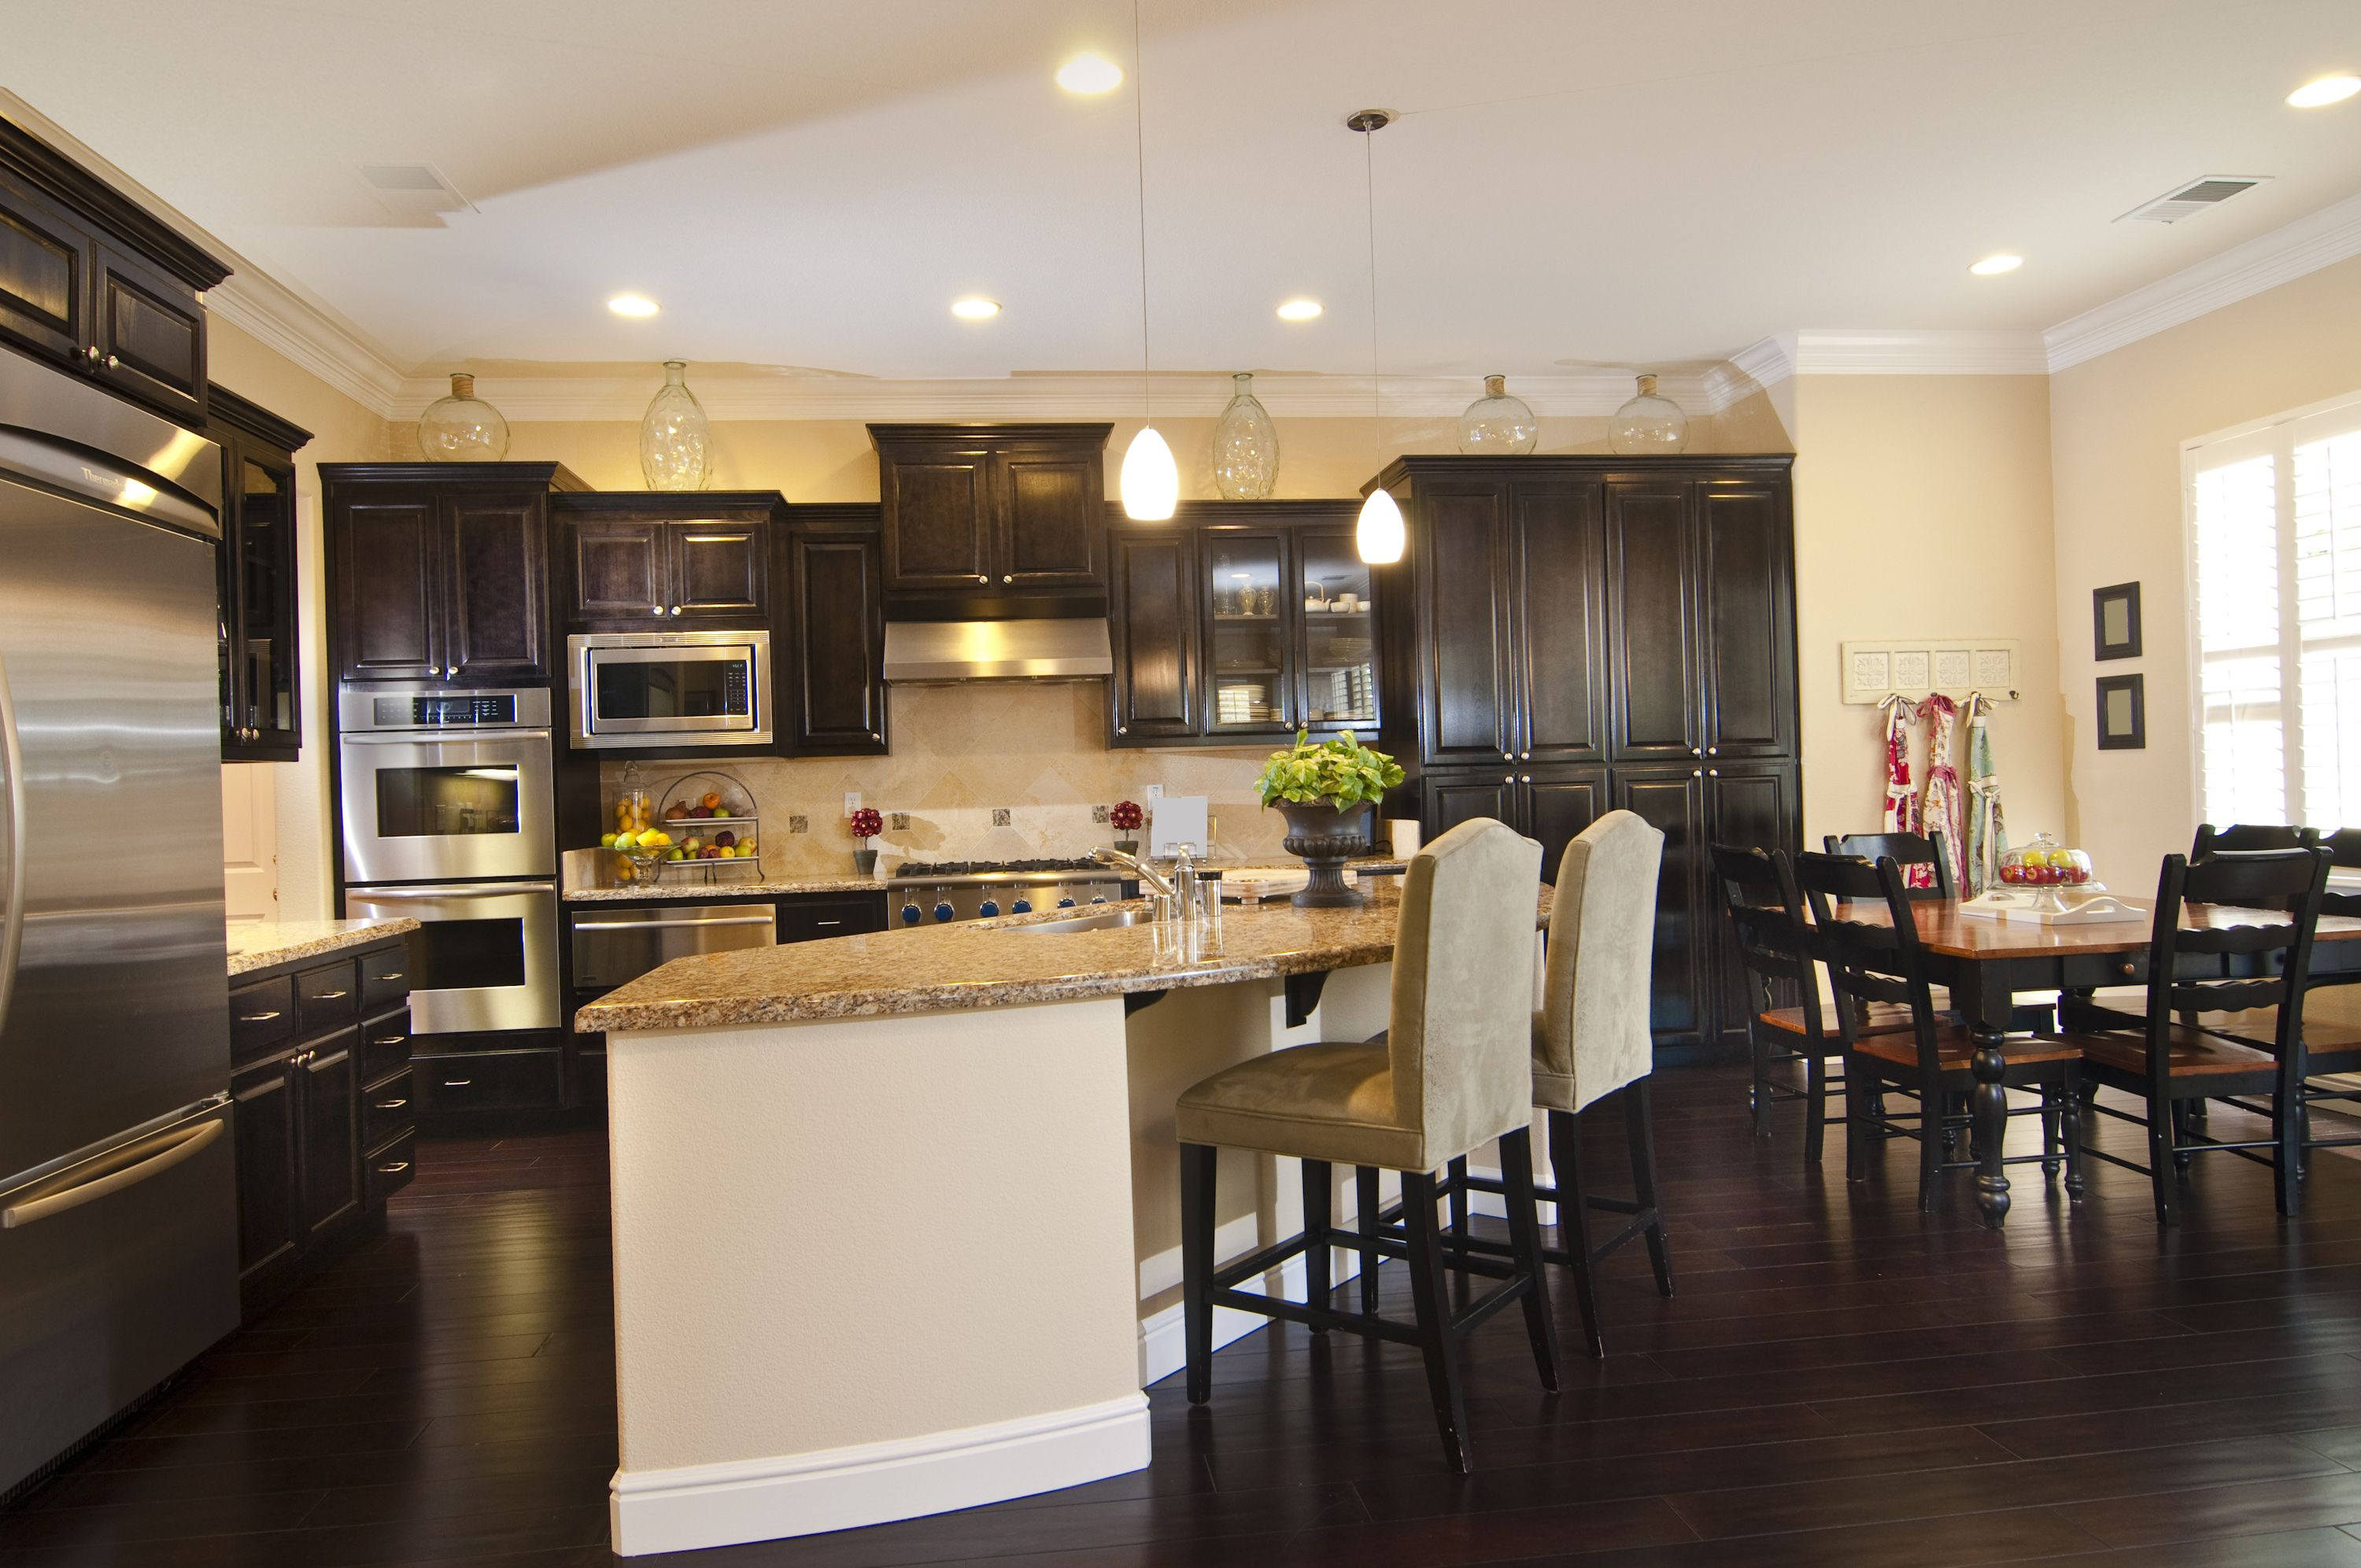 34 Kitchens With Dark Wood Floors Pictures Dark Kitchen Wood Floor Kitchen Kitchen Flooring